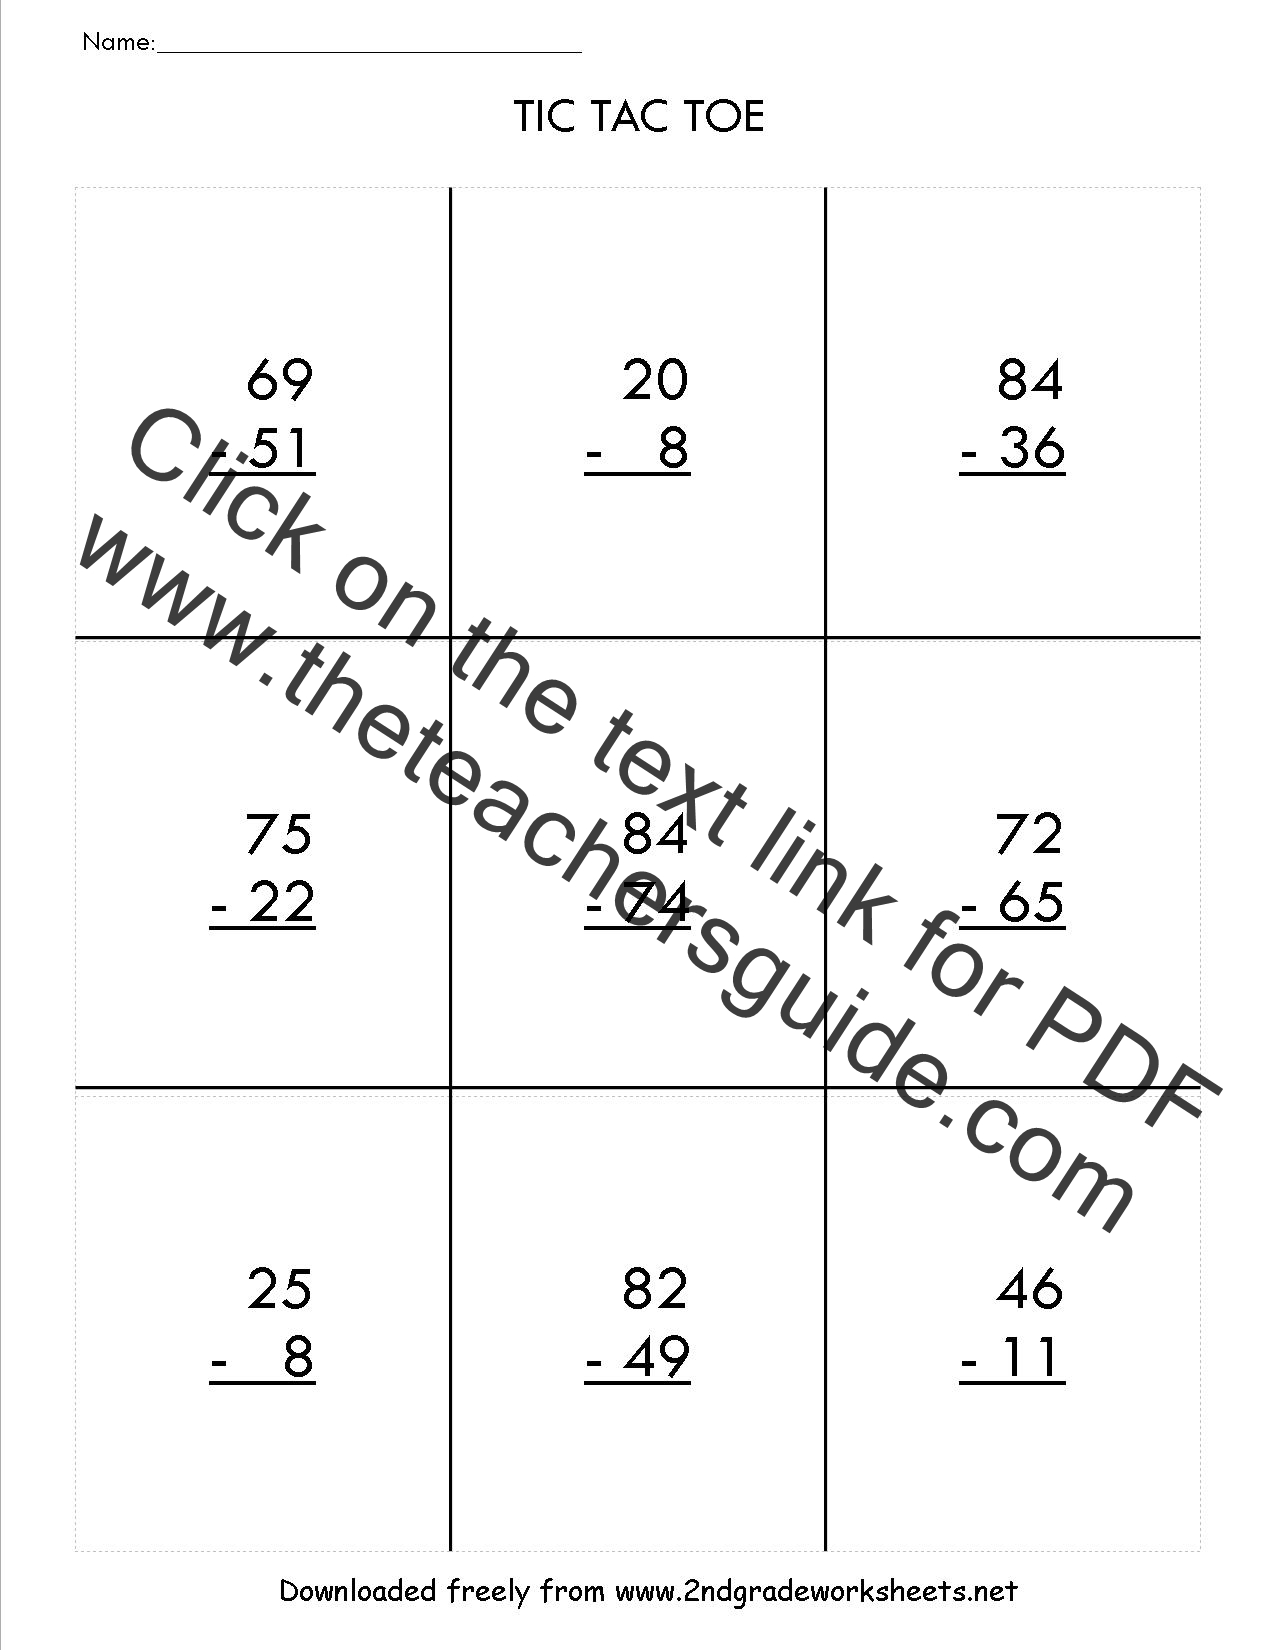 Two Digit Subtraction Worksheets – 2 Digit Addition and Subtraction Worksheets with Regrouping